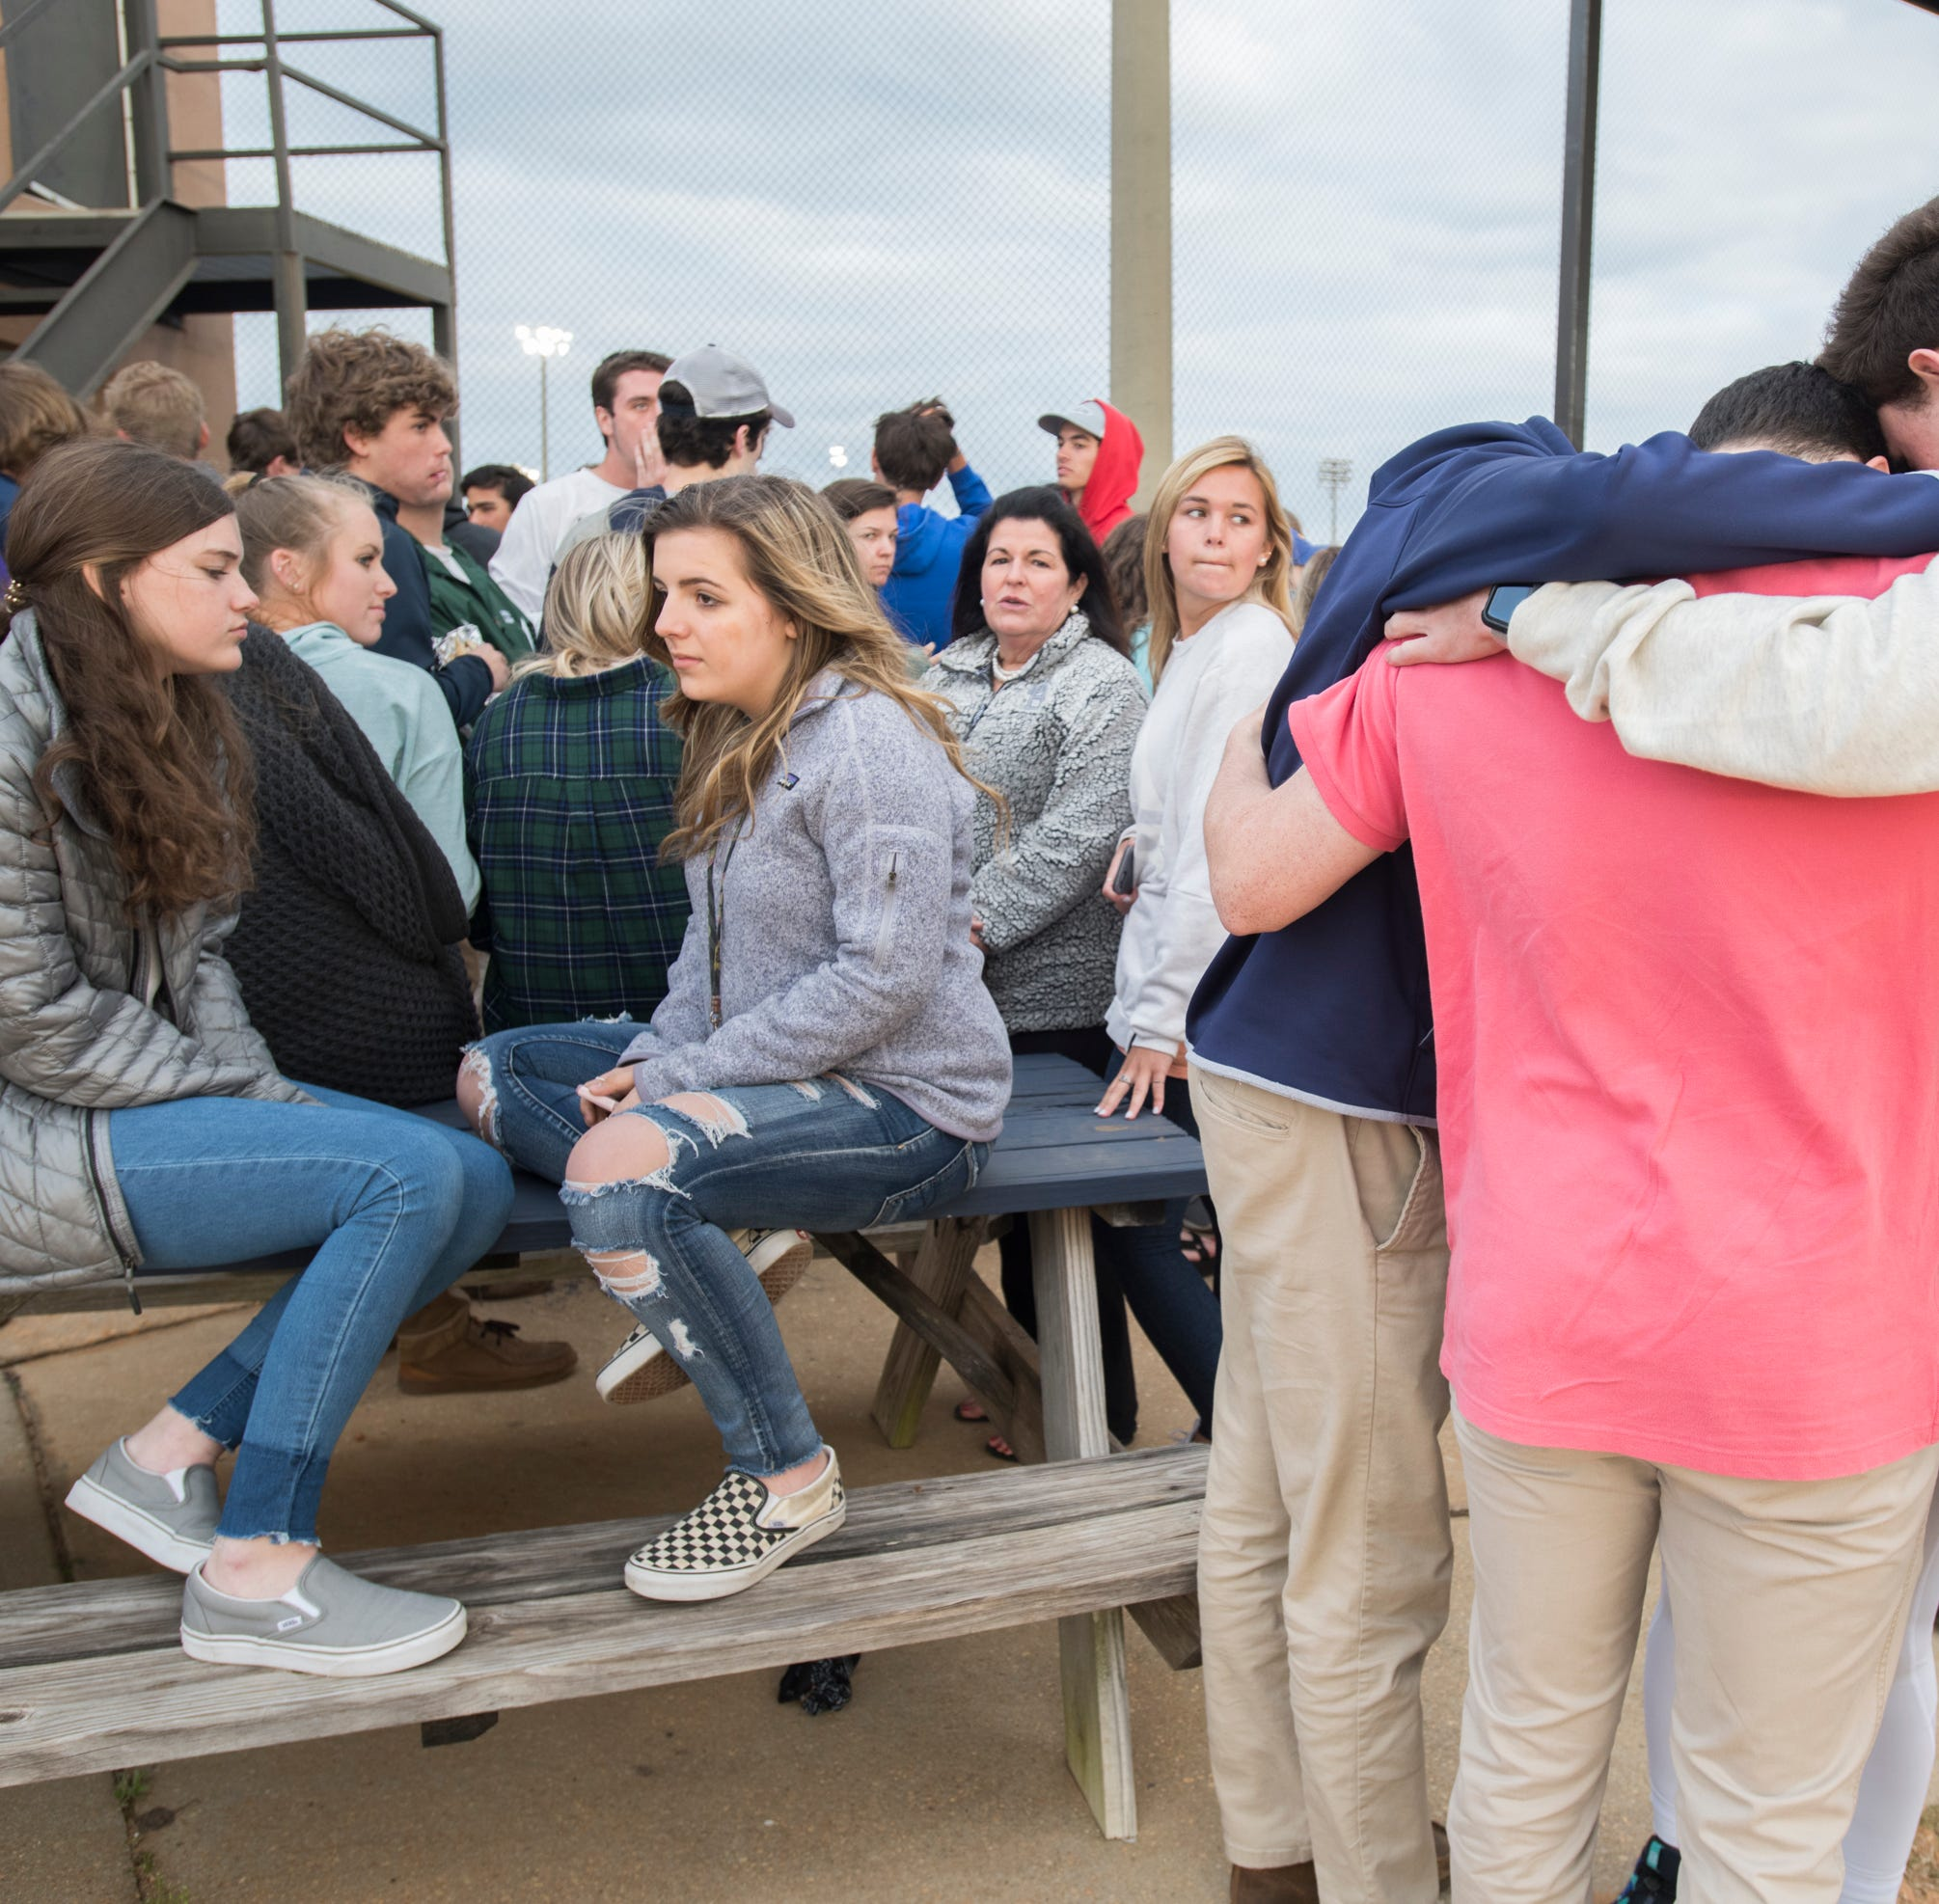 Connor Wood honored at Gulf Breeze baseball stadium after tragic death